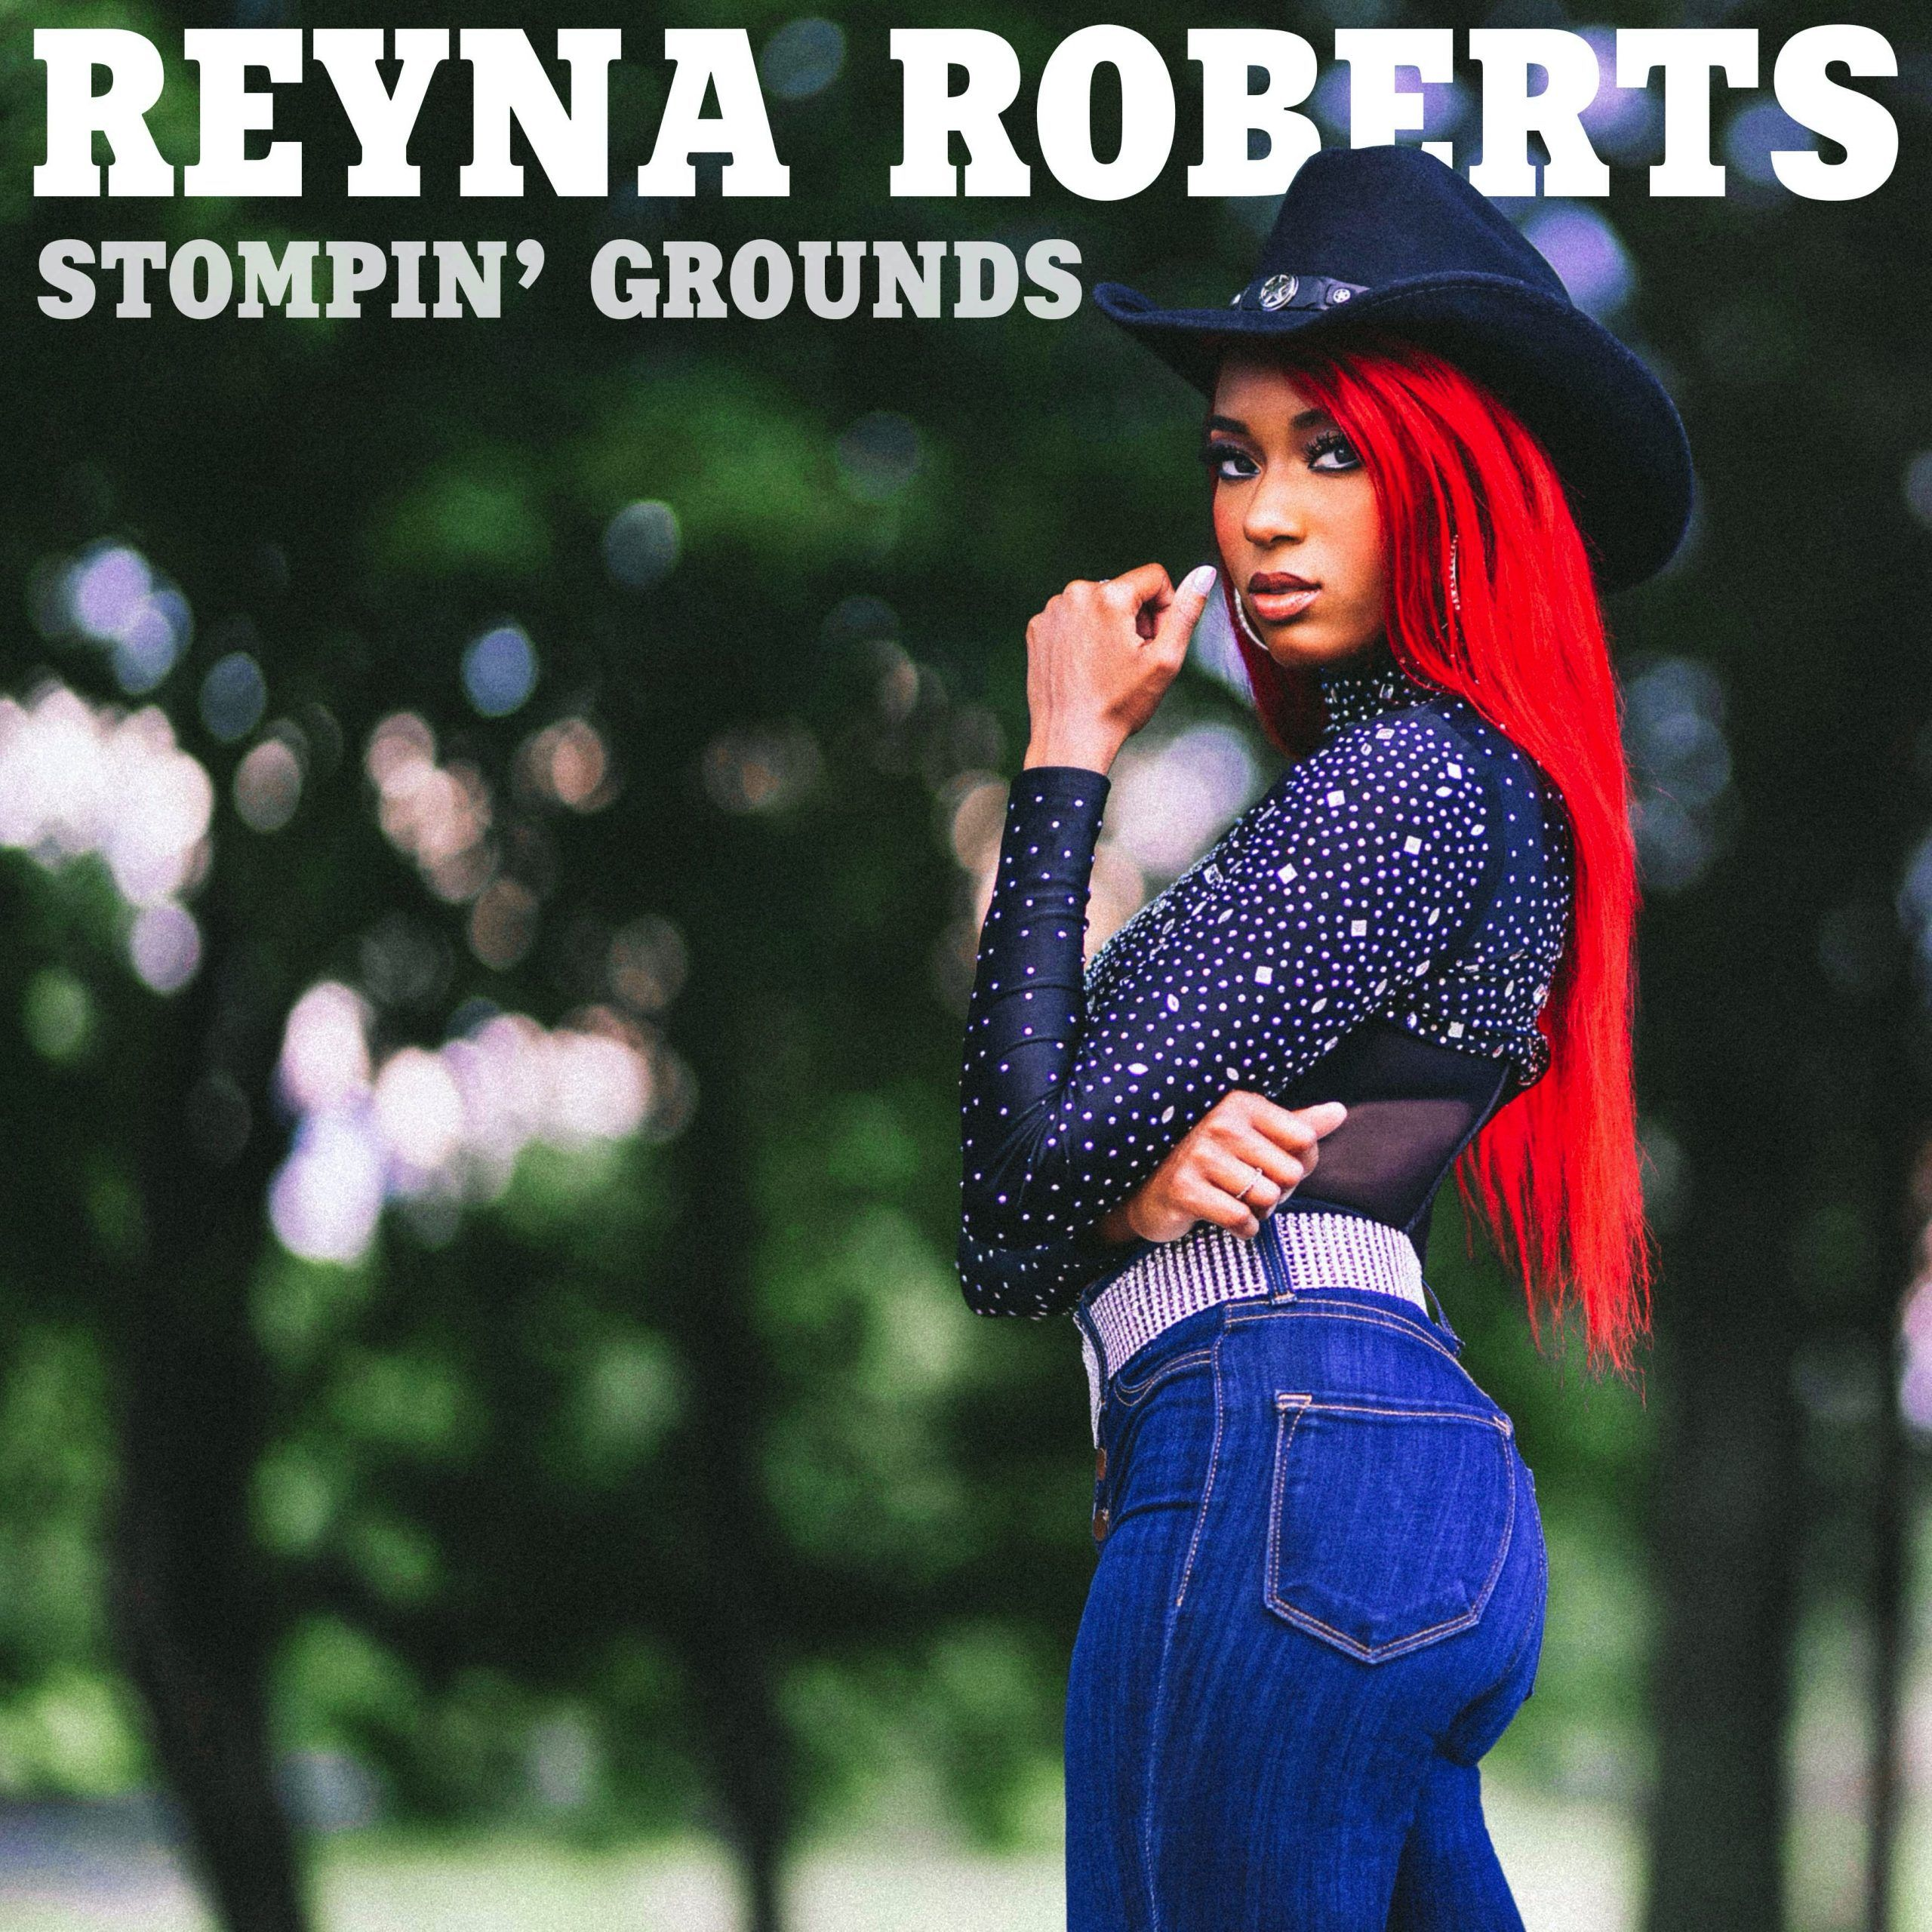 Reyna Roberts - Stompin' Grounds